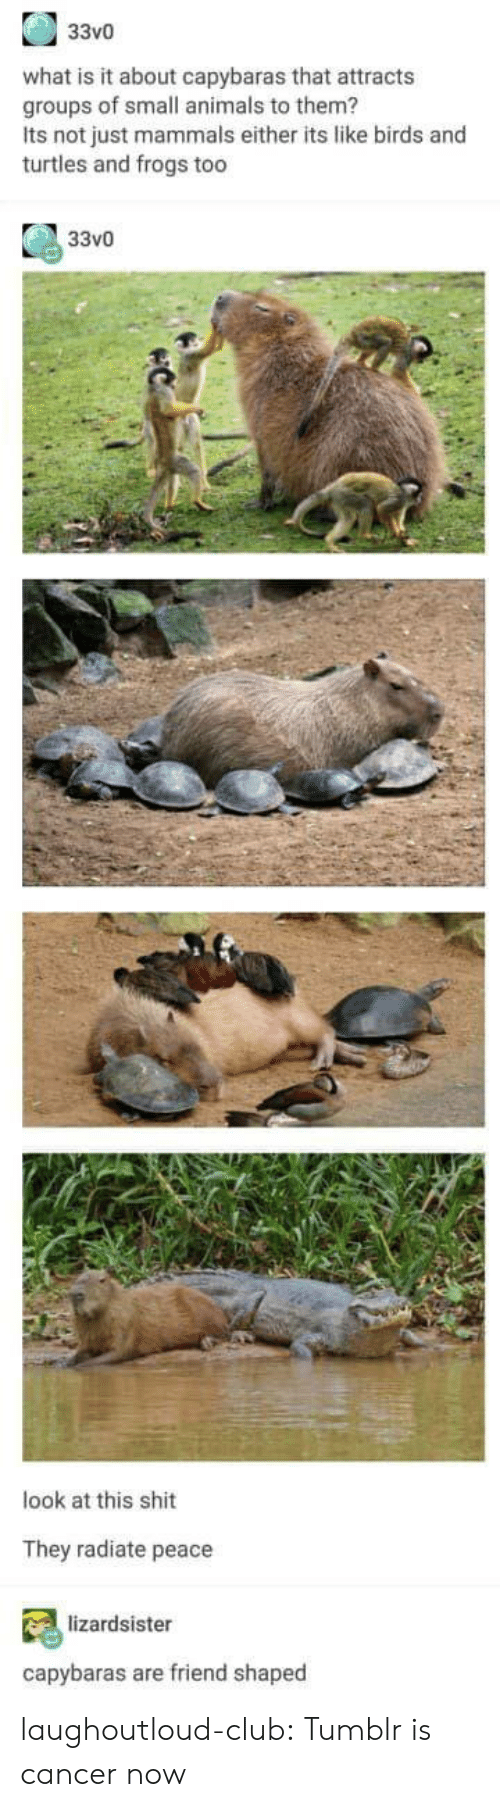 Animals, Club, and Shit: 33v0  what is it about capybaras that attracts  groups of small animals to them?  Its not just mammals either its like birds and  turtles and frogs too  33vO  look at this shit  They radiate peace  lizardsister  capybaras are friend shaped laughoutloud-club:  Tumblr is cancer now